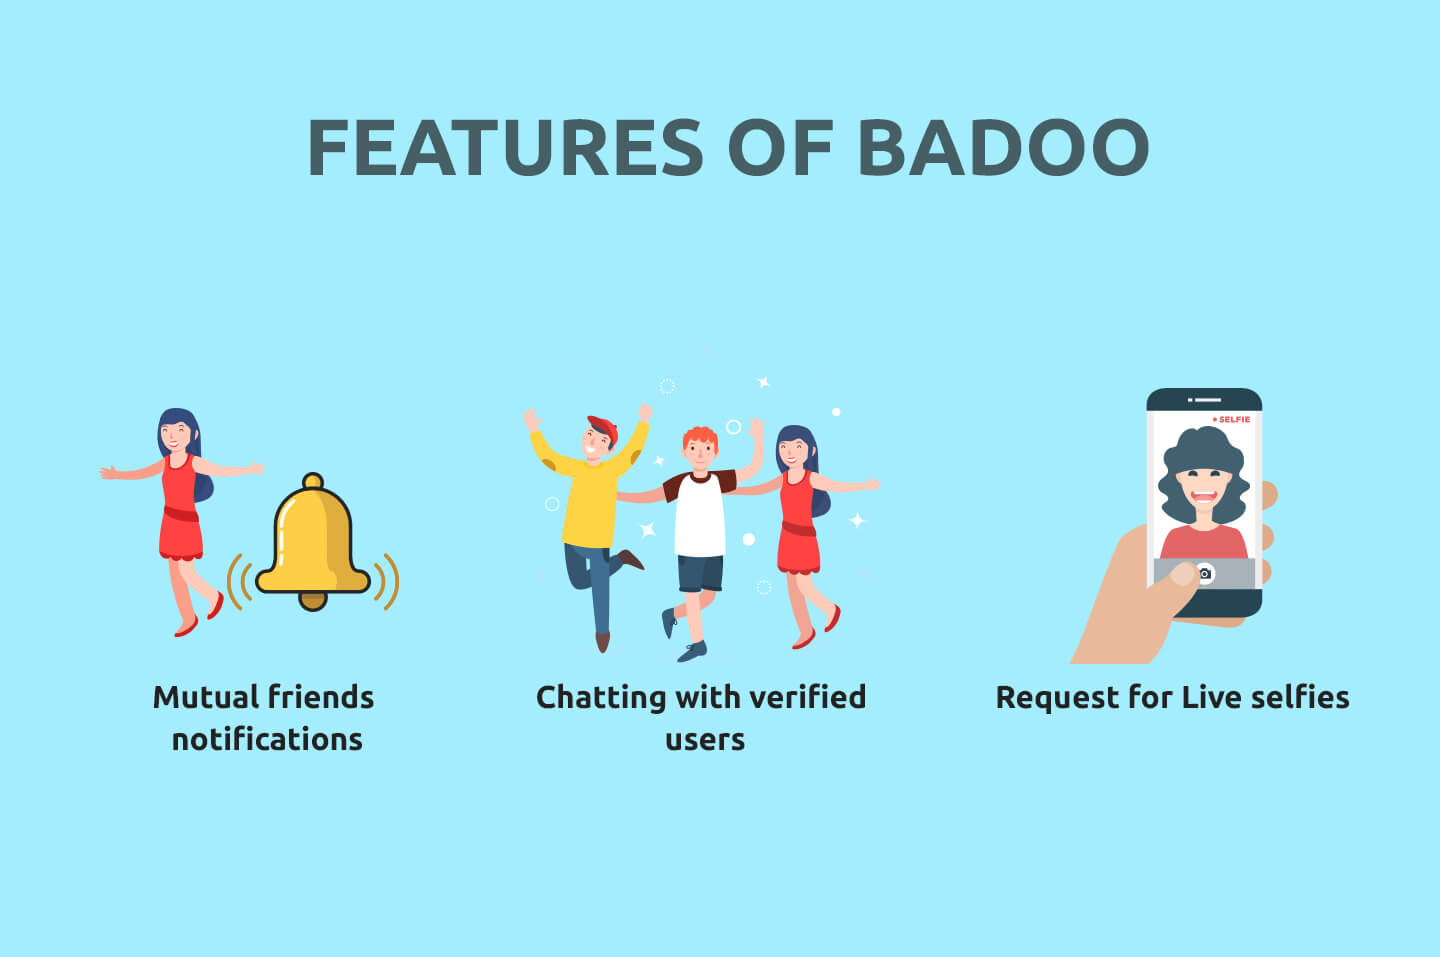 Features of badoo